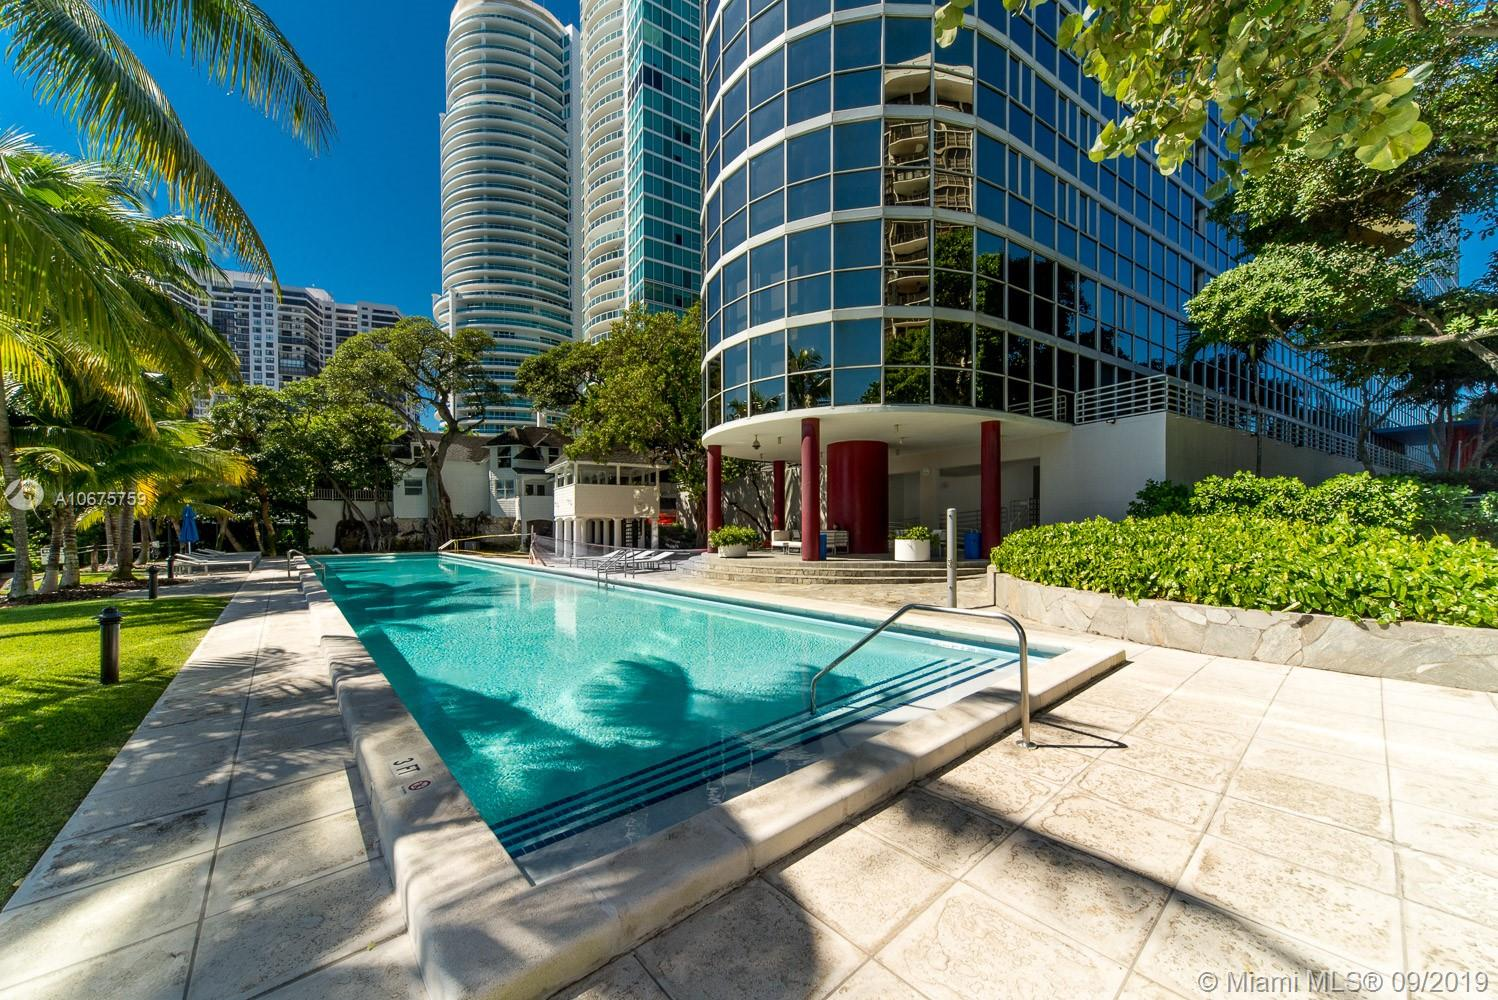 Atlantis on Brickell image #25